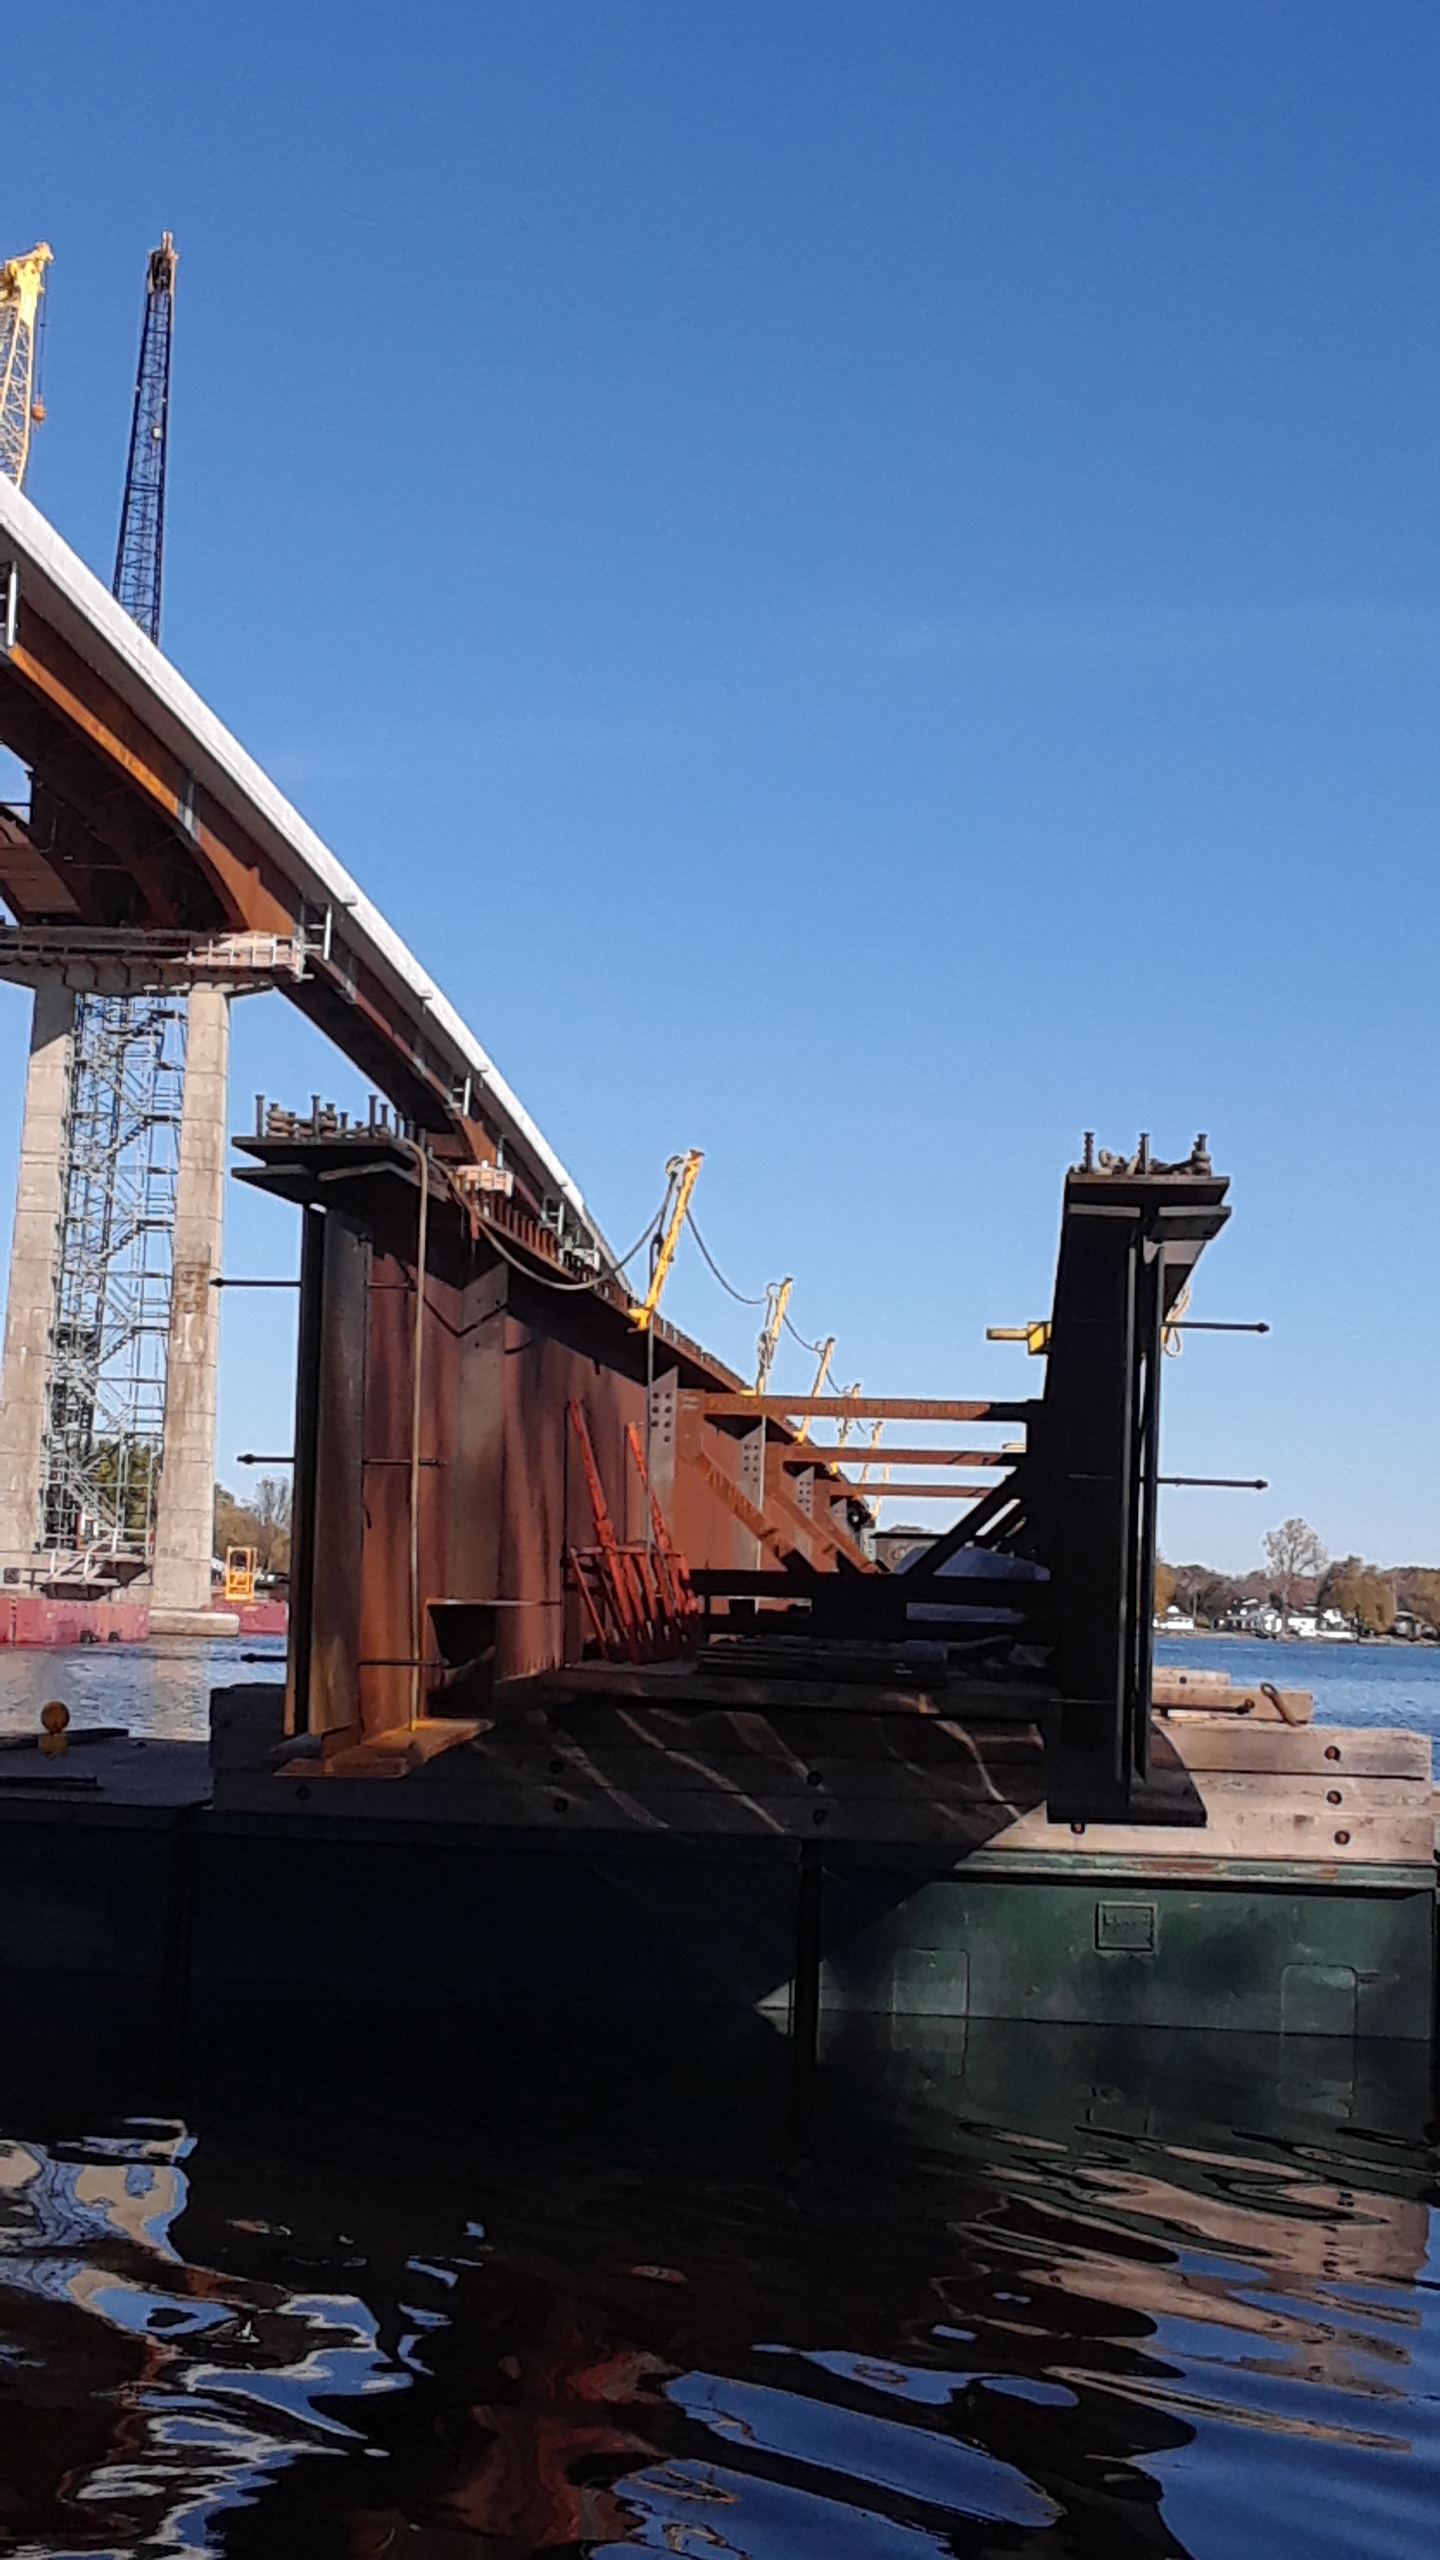 Second girder (the Approach) on the barge before being taken to the bridge for placement